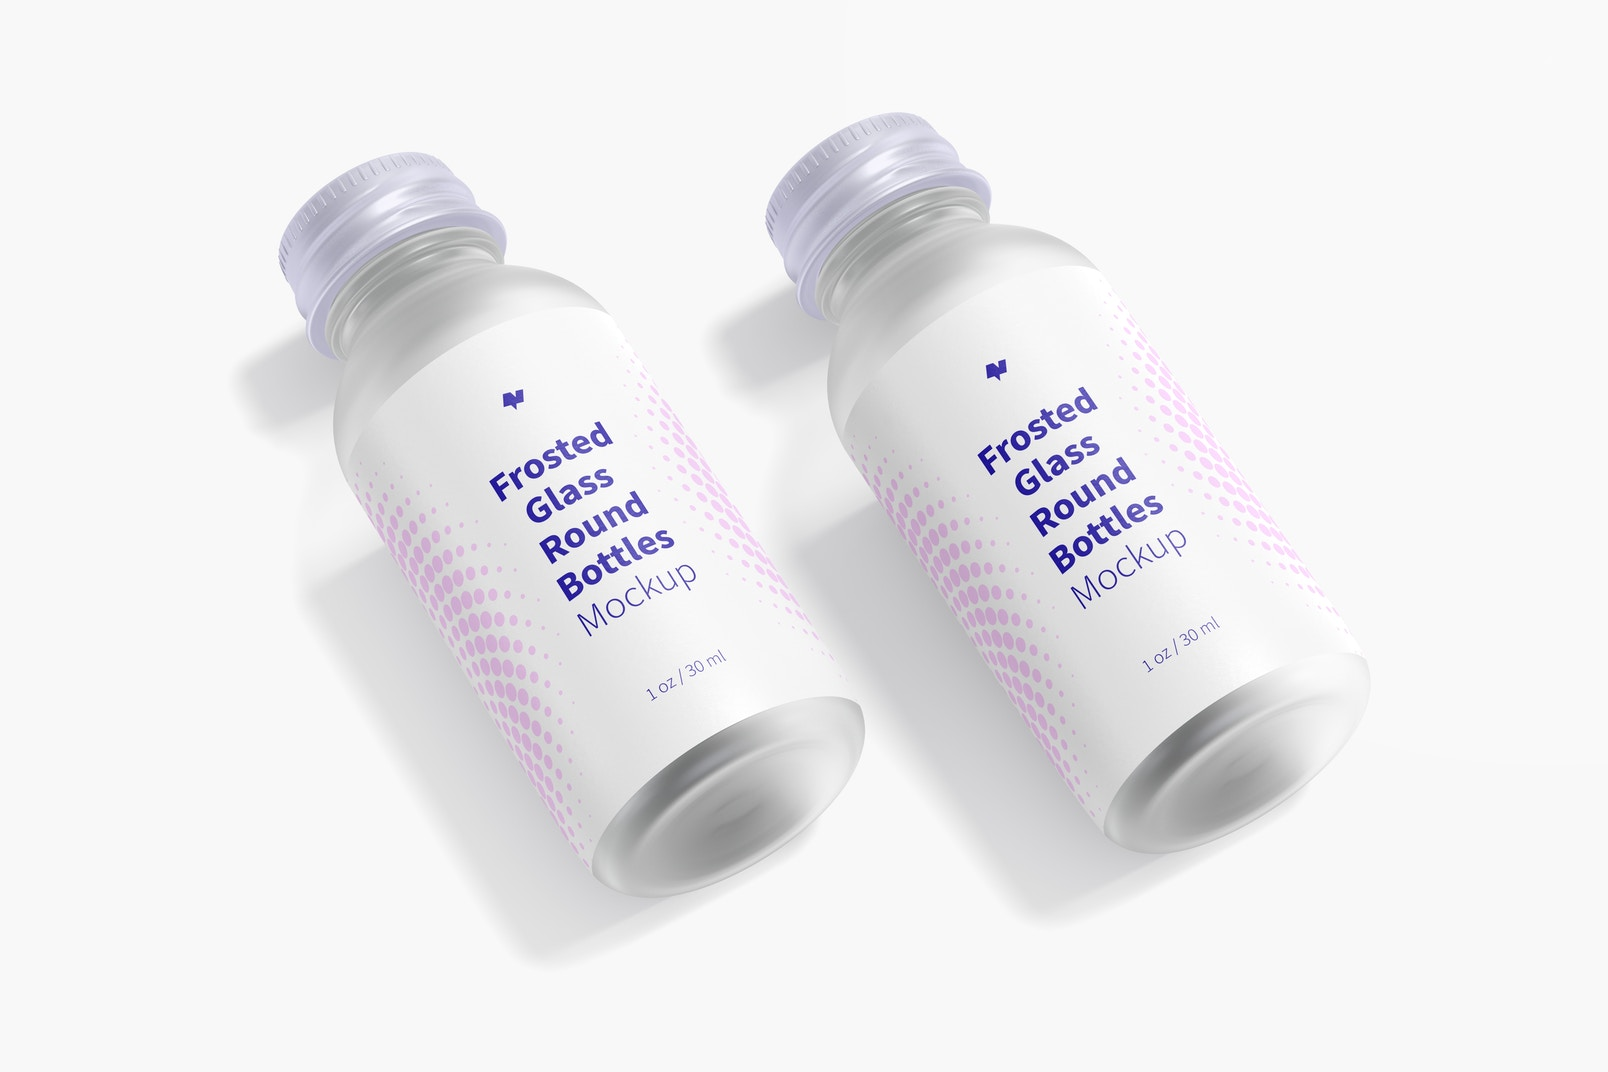 1 oz Frosted Glass Round Bottles Mockup, Dropped